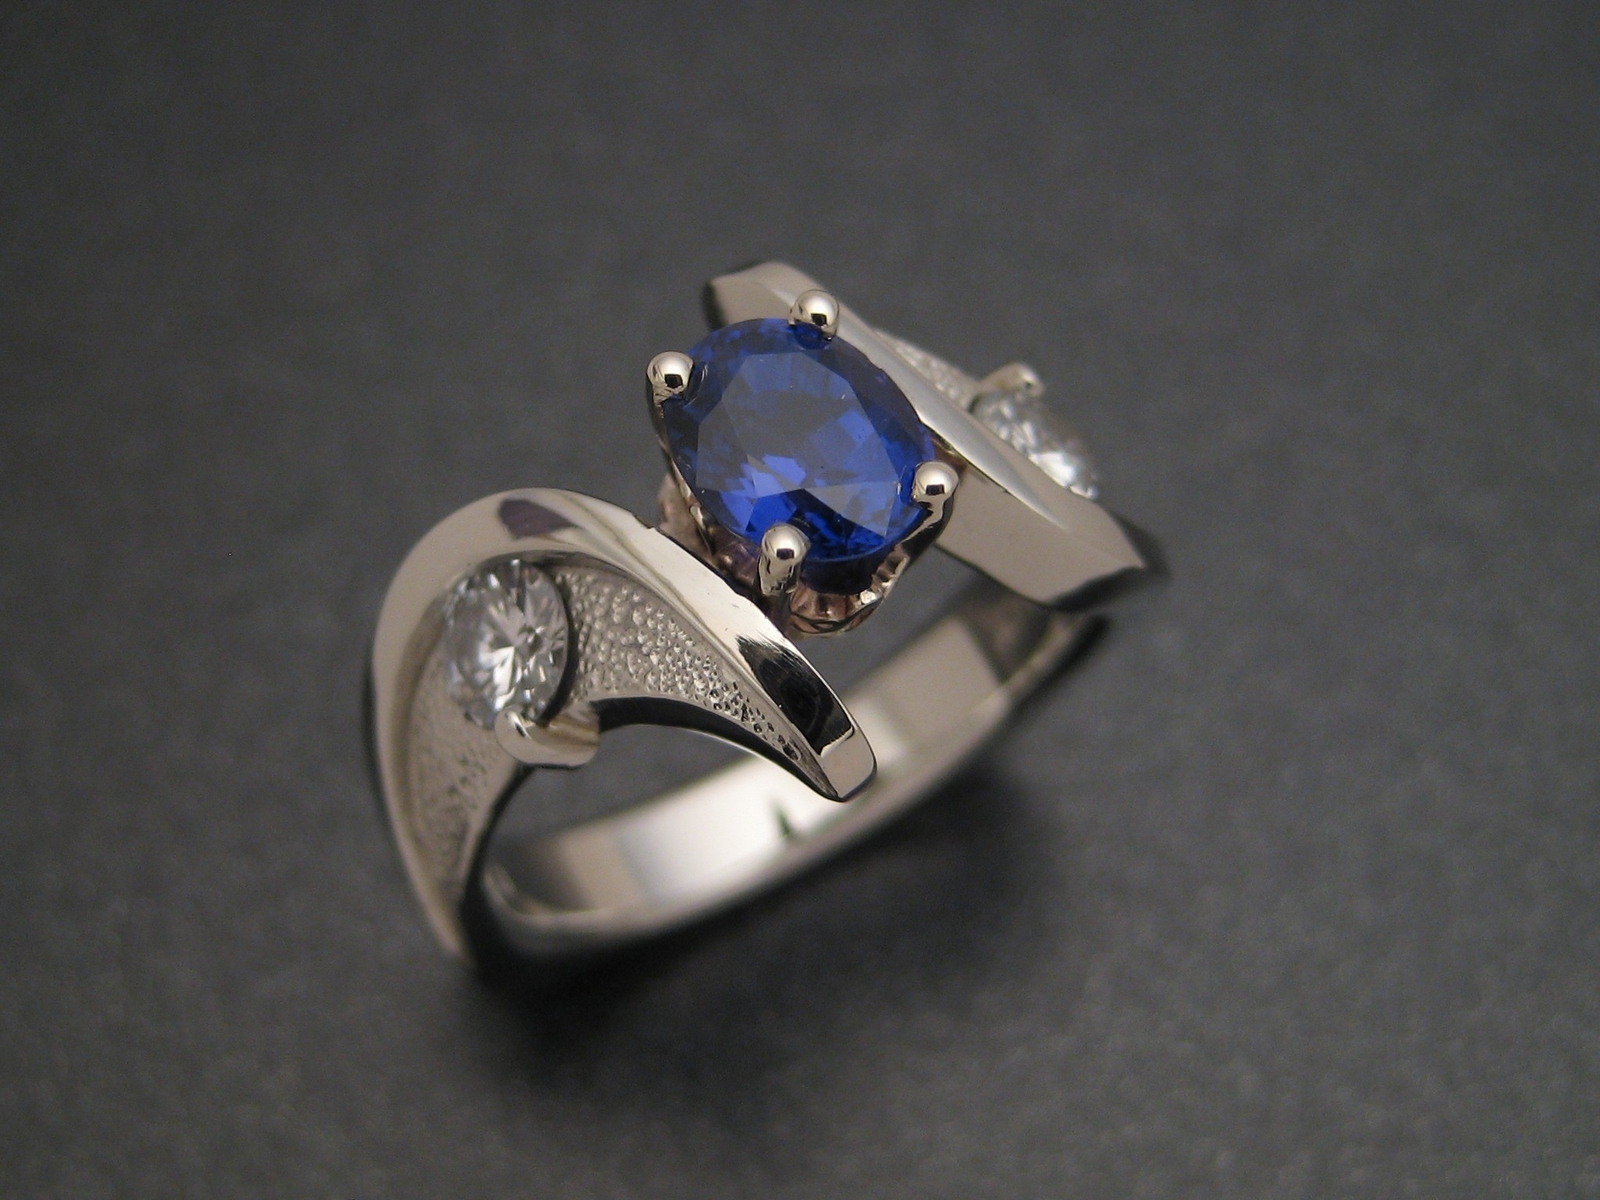 Sapphire Wedding Ring by Sculpted Jewelry Designs at CustomMade.com